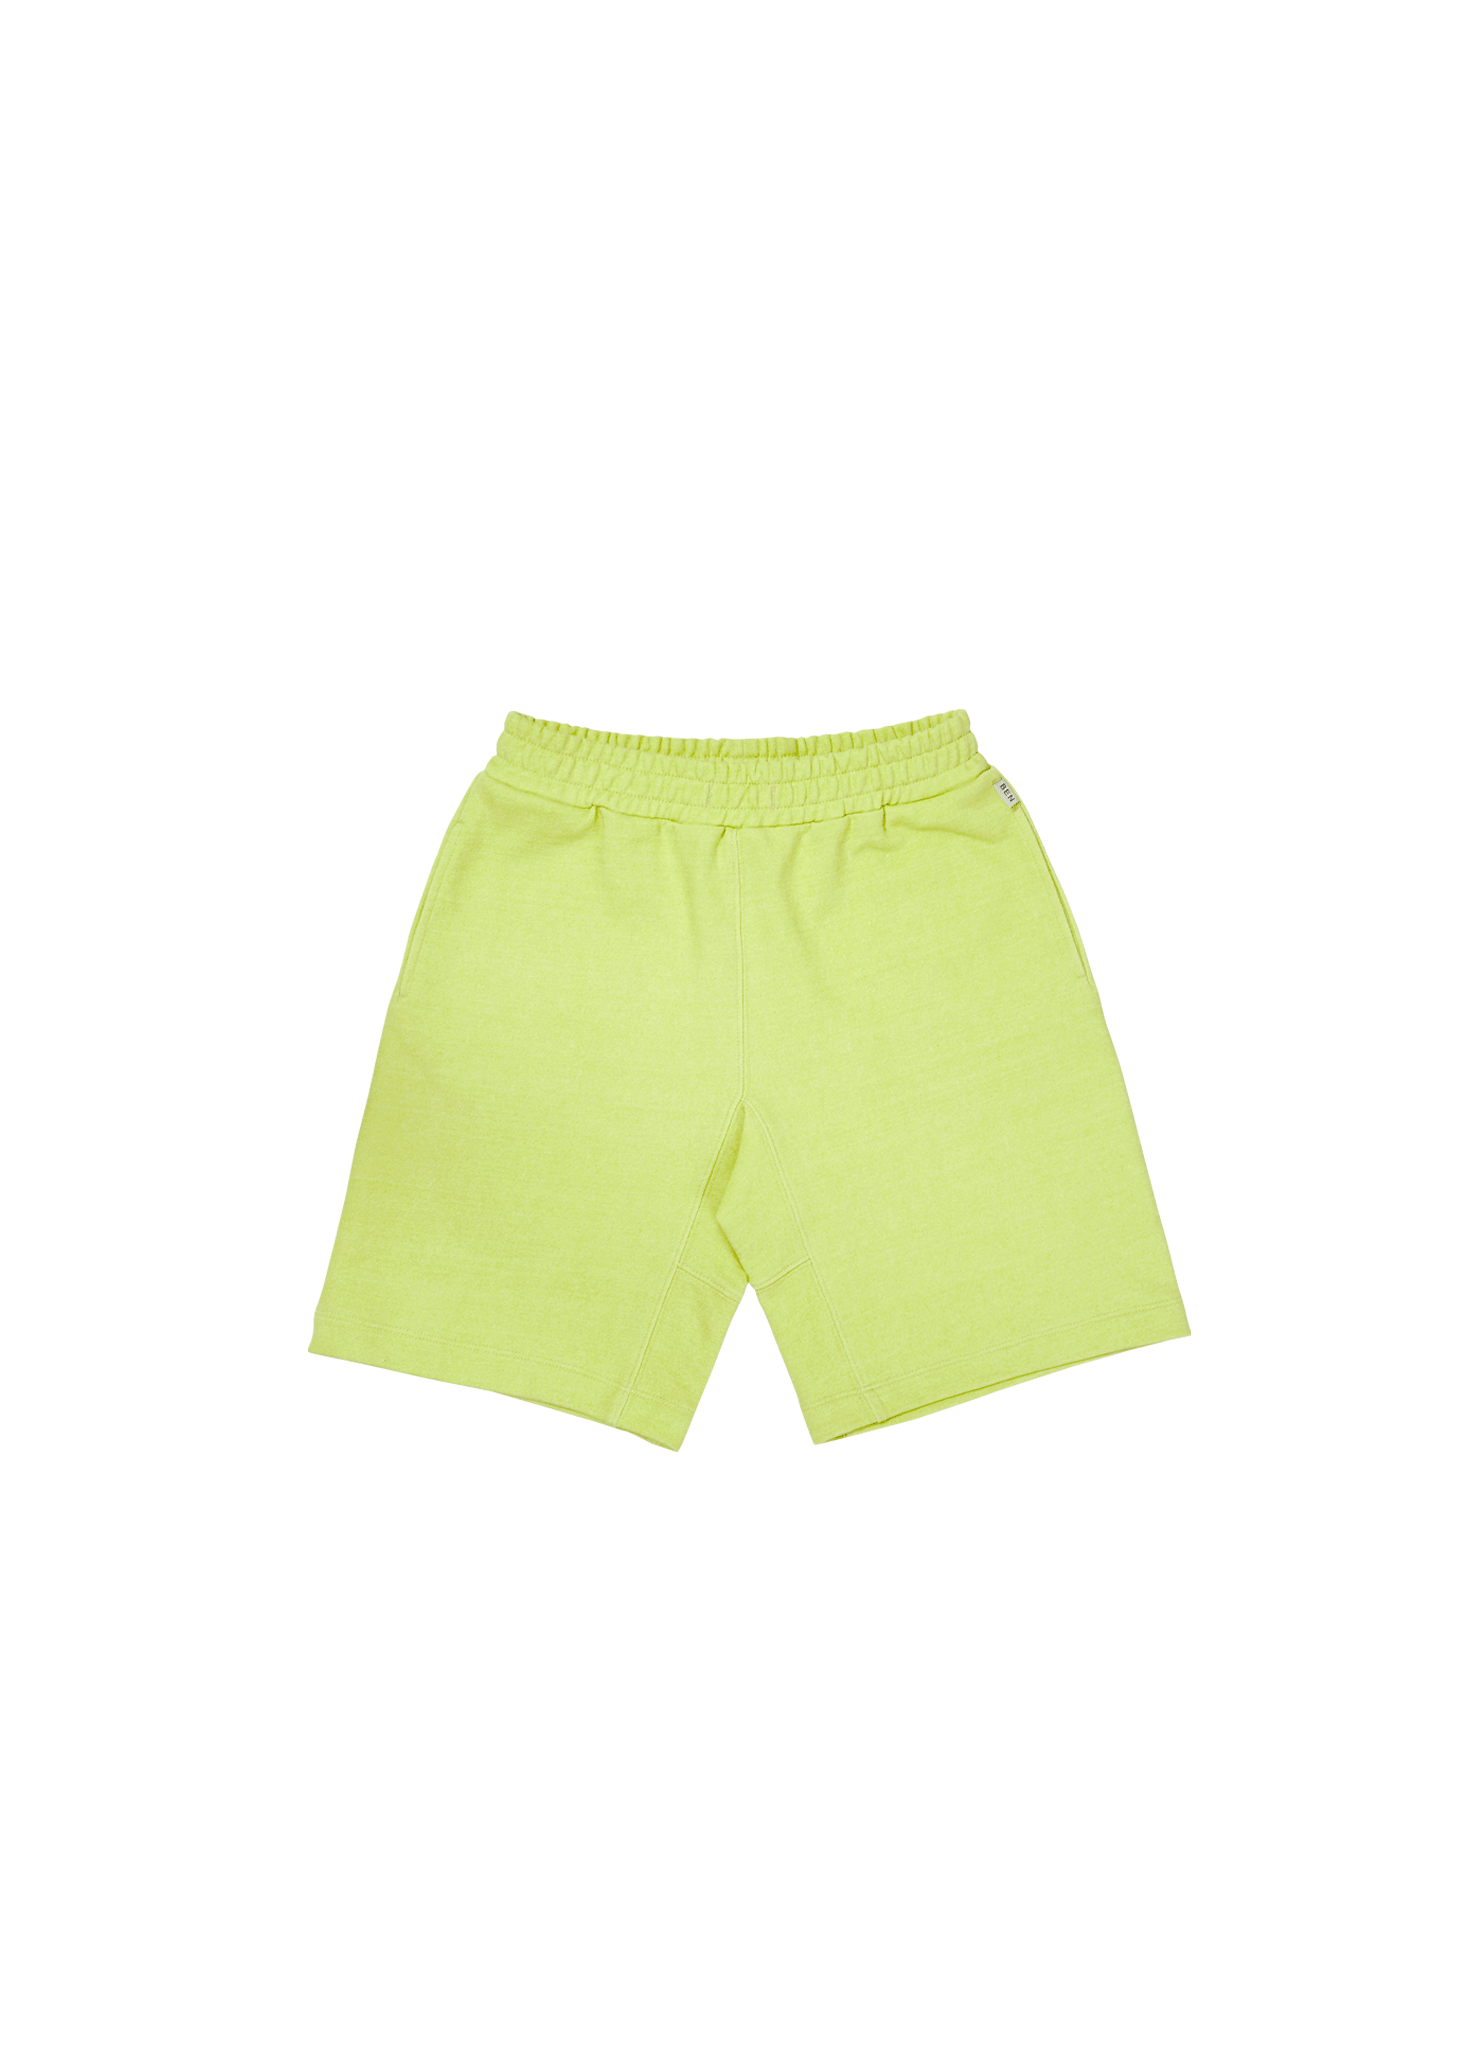 ben Summer 20 Sweat Shorts_Lime